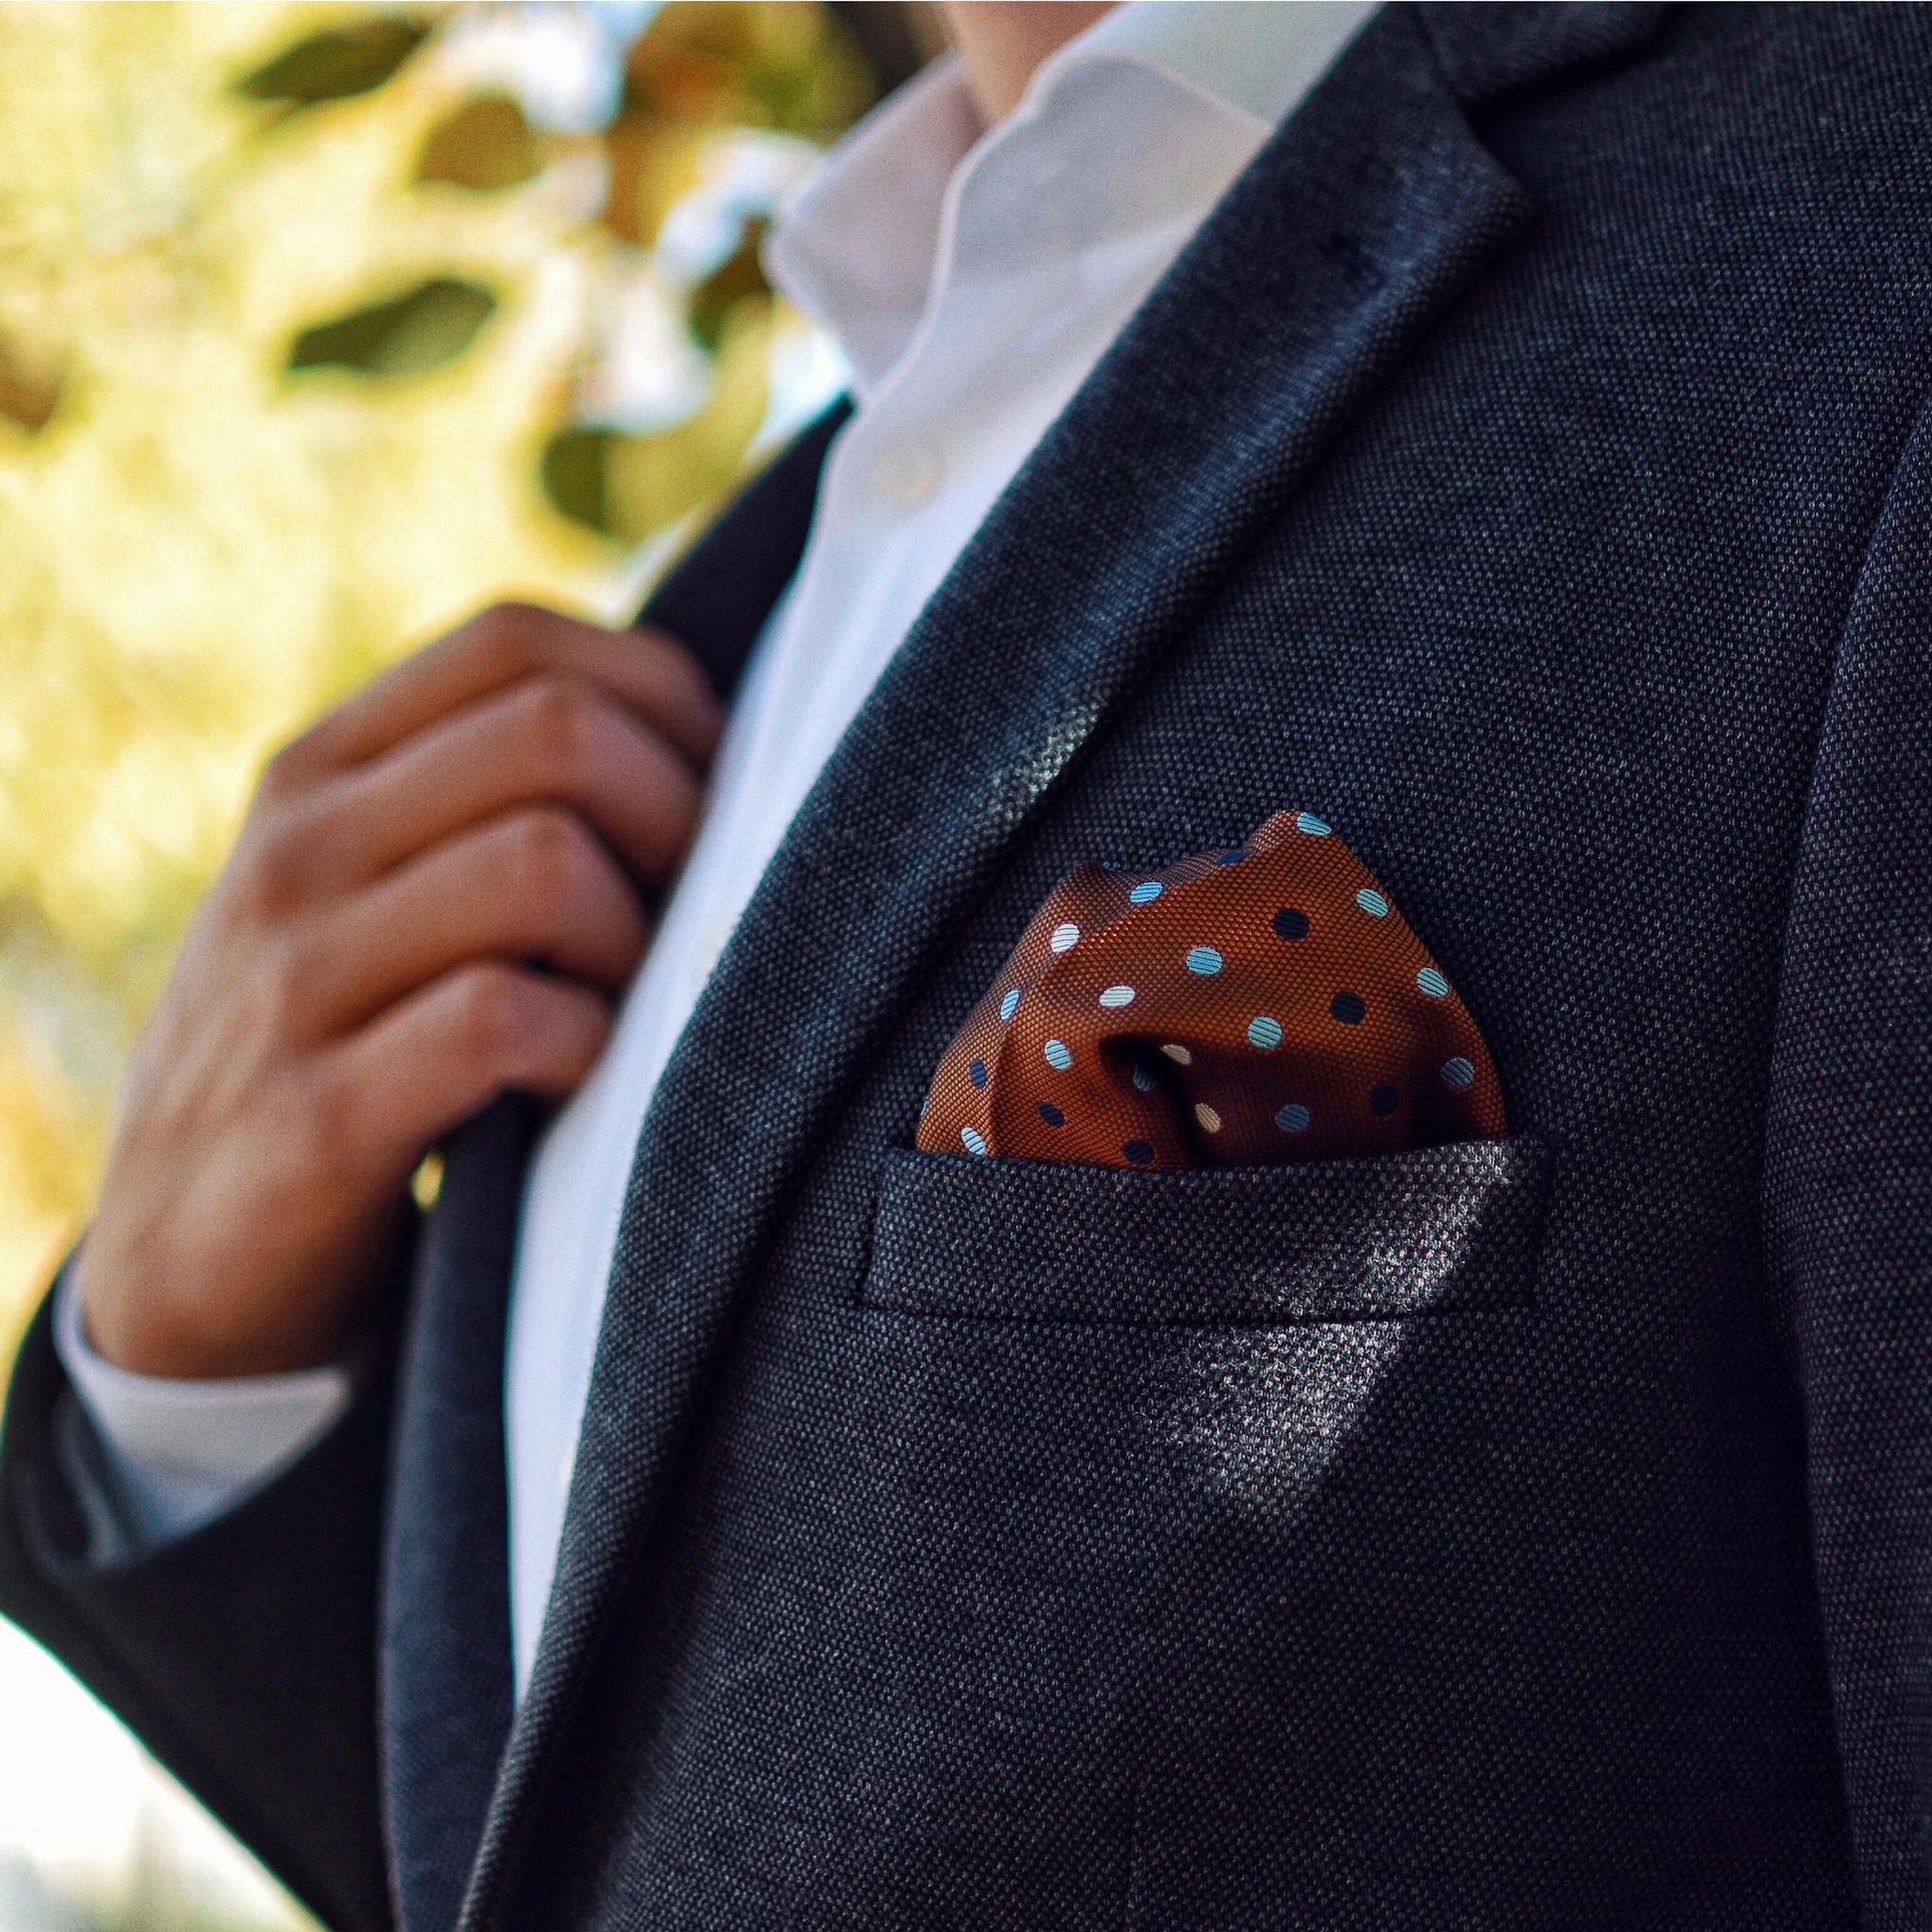 Brown pocket square on a suit